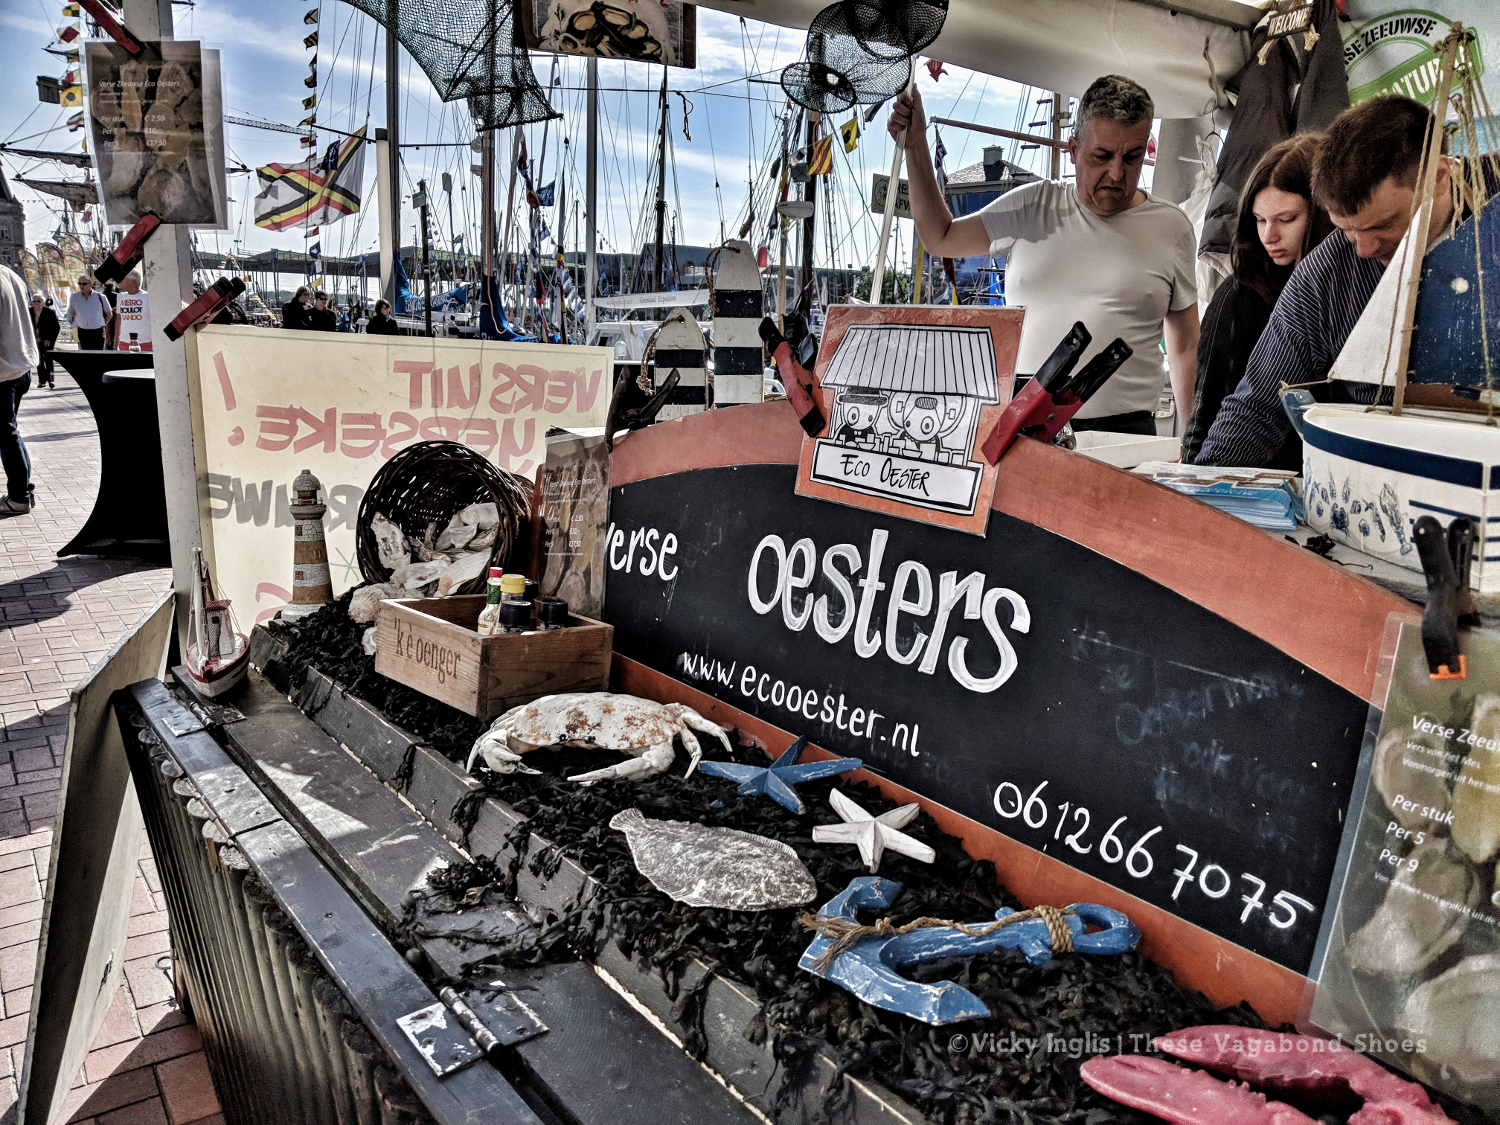 ostend_oysters_small